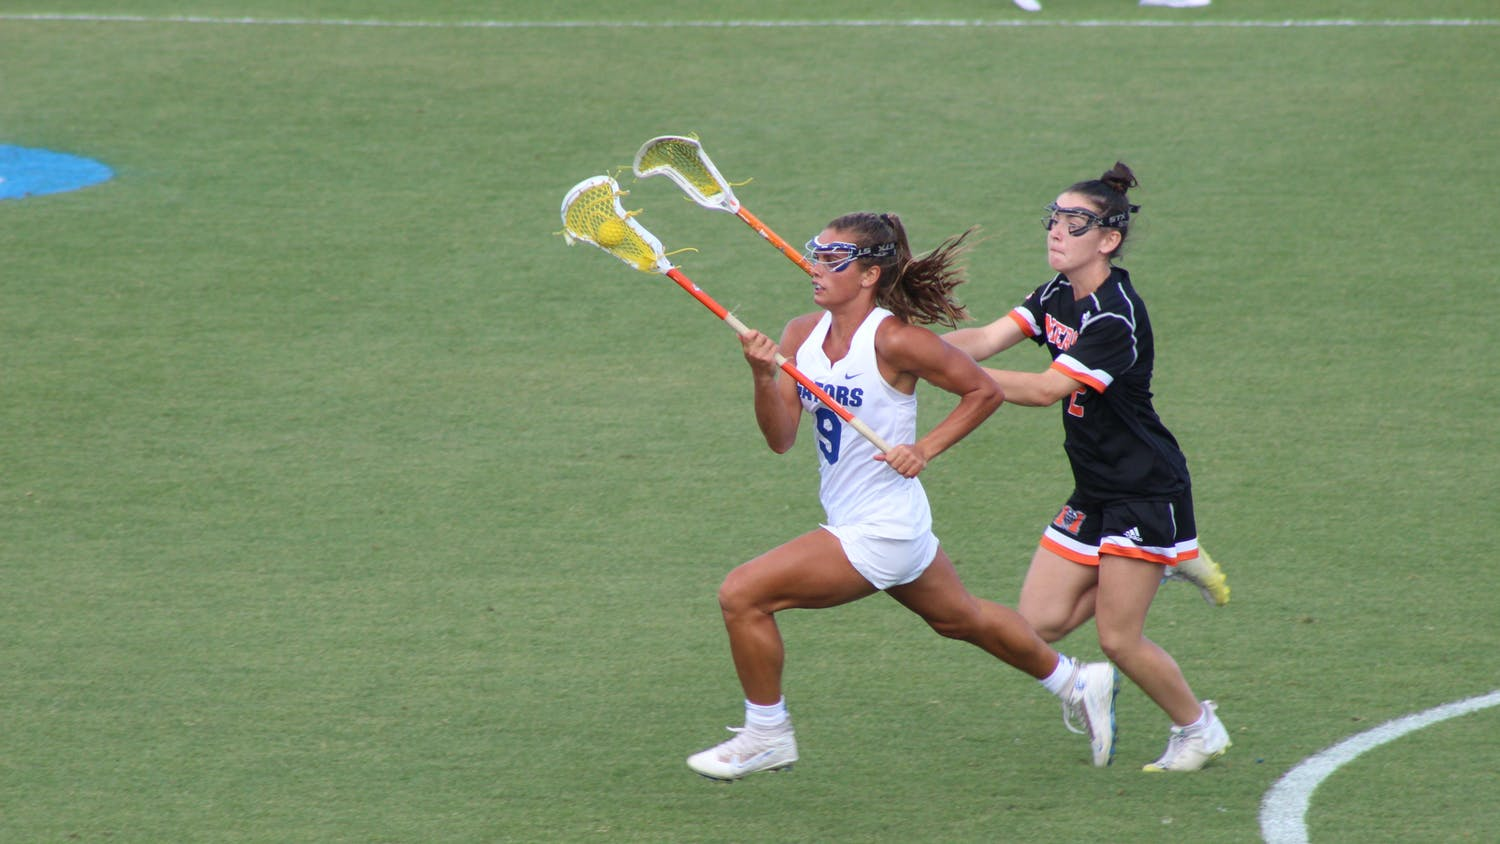 Florida's Emily Heller sprints down the field Friday against Mercer. Florida defeated the Bears 23-5 to move to the second round of the 2021 NCAA Women's Lacrosse Tournament.